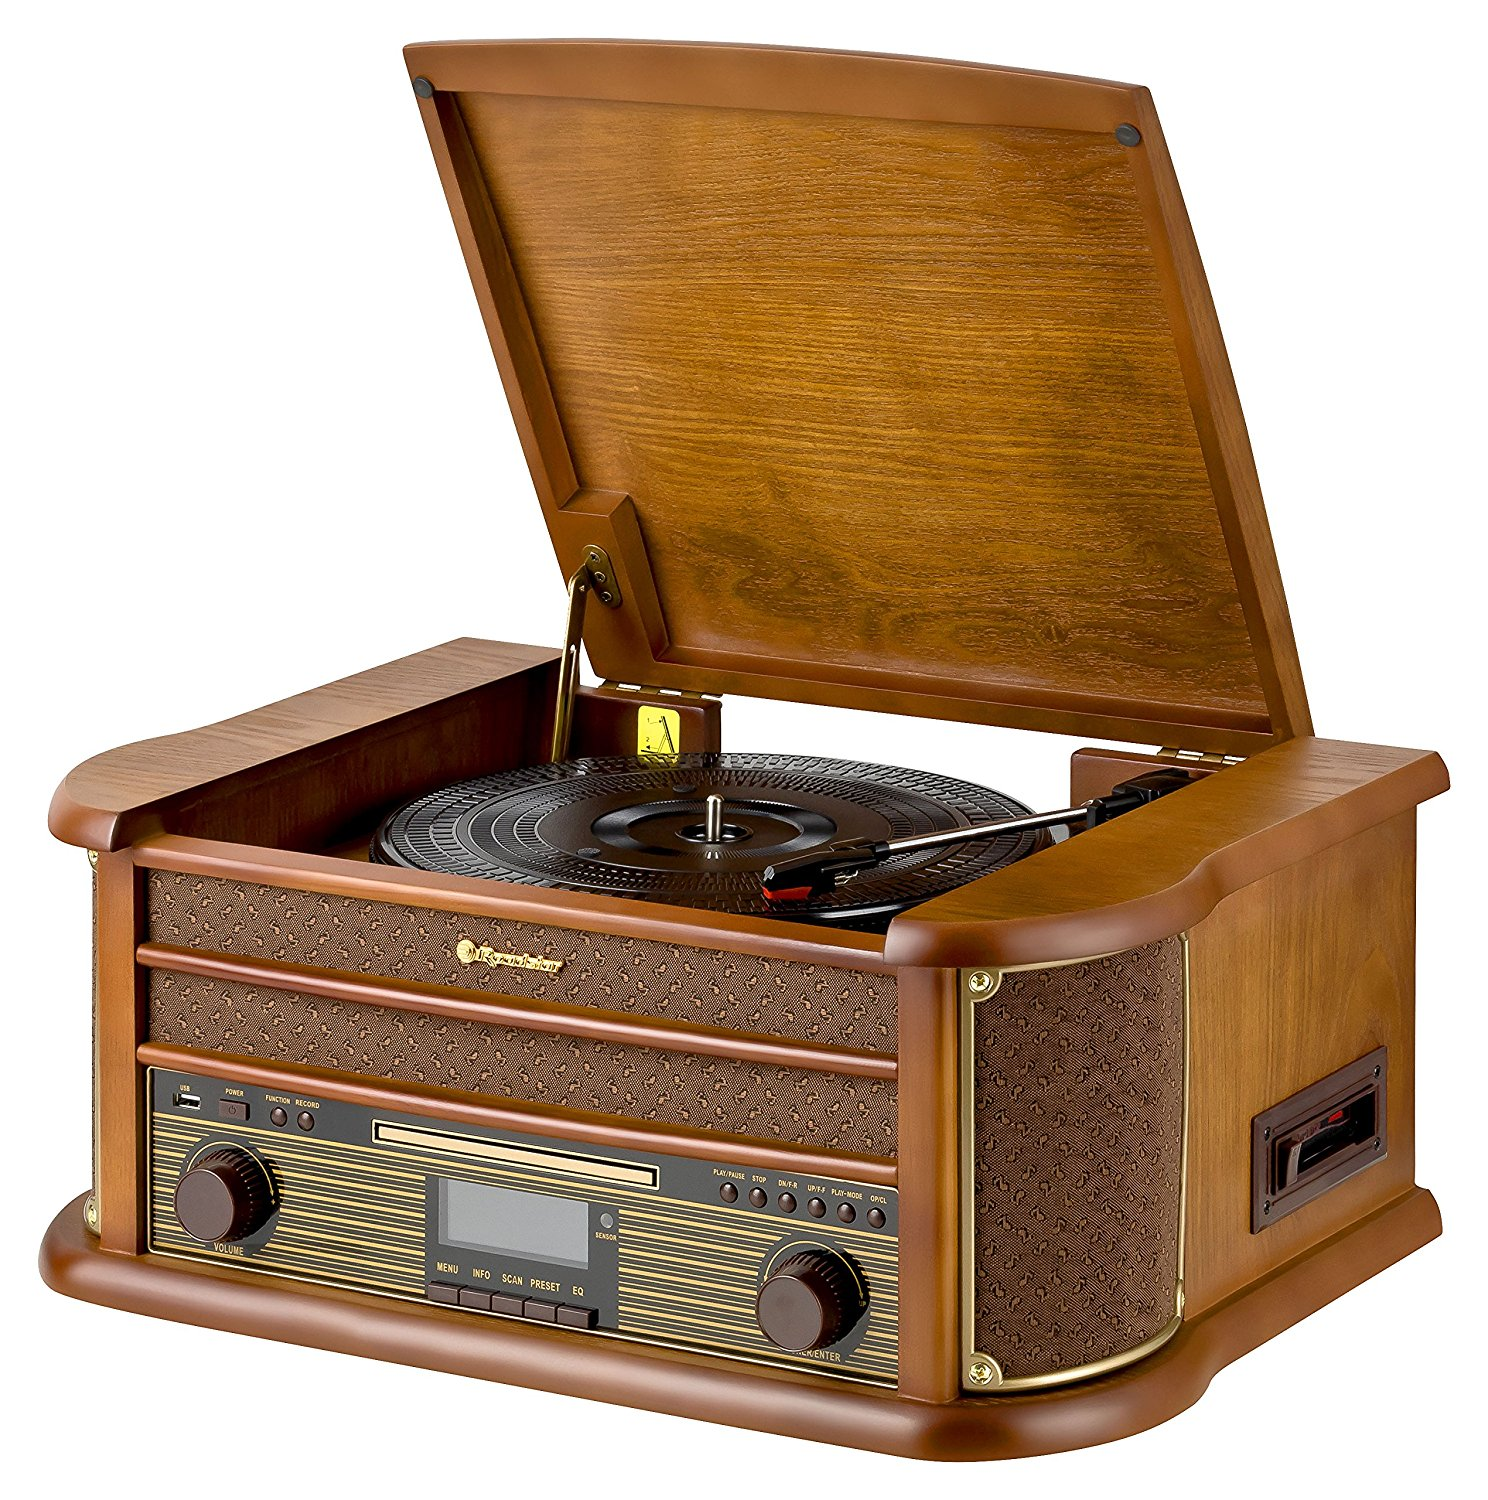 roadstar wooden retro style fm mw radio with cd mp3 player. Black Bedroom Furniture Sets. Home Design Ideas